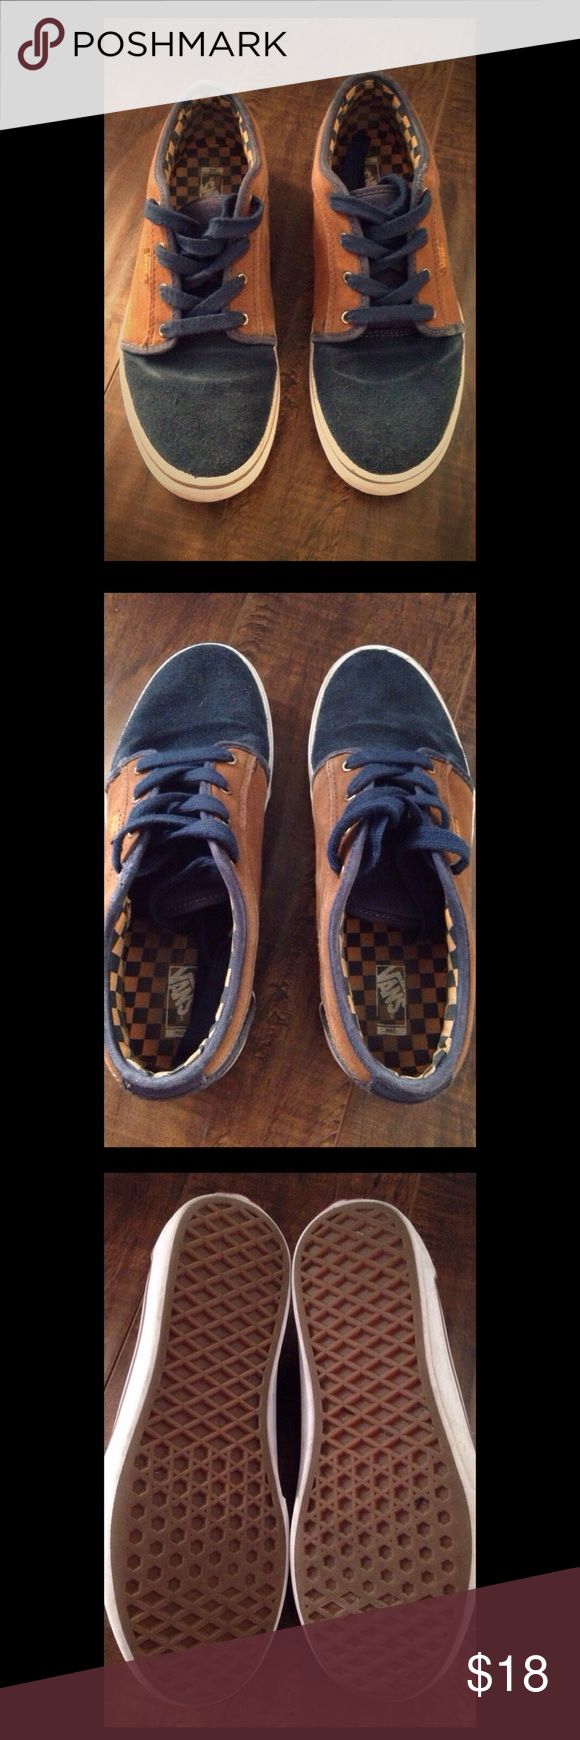 Boys Vans Pro Skate Sneakers Boys Youth size 6 in good condition. Suede like material. Vans Shoes Sneakers